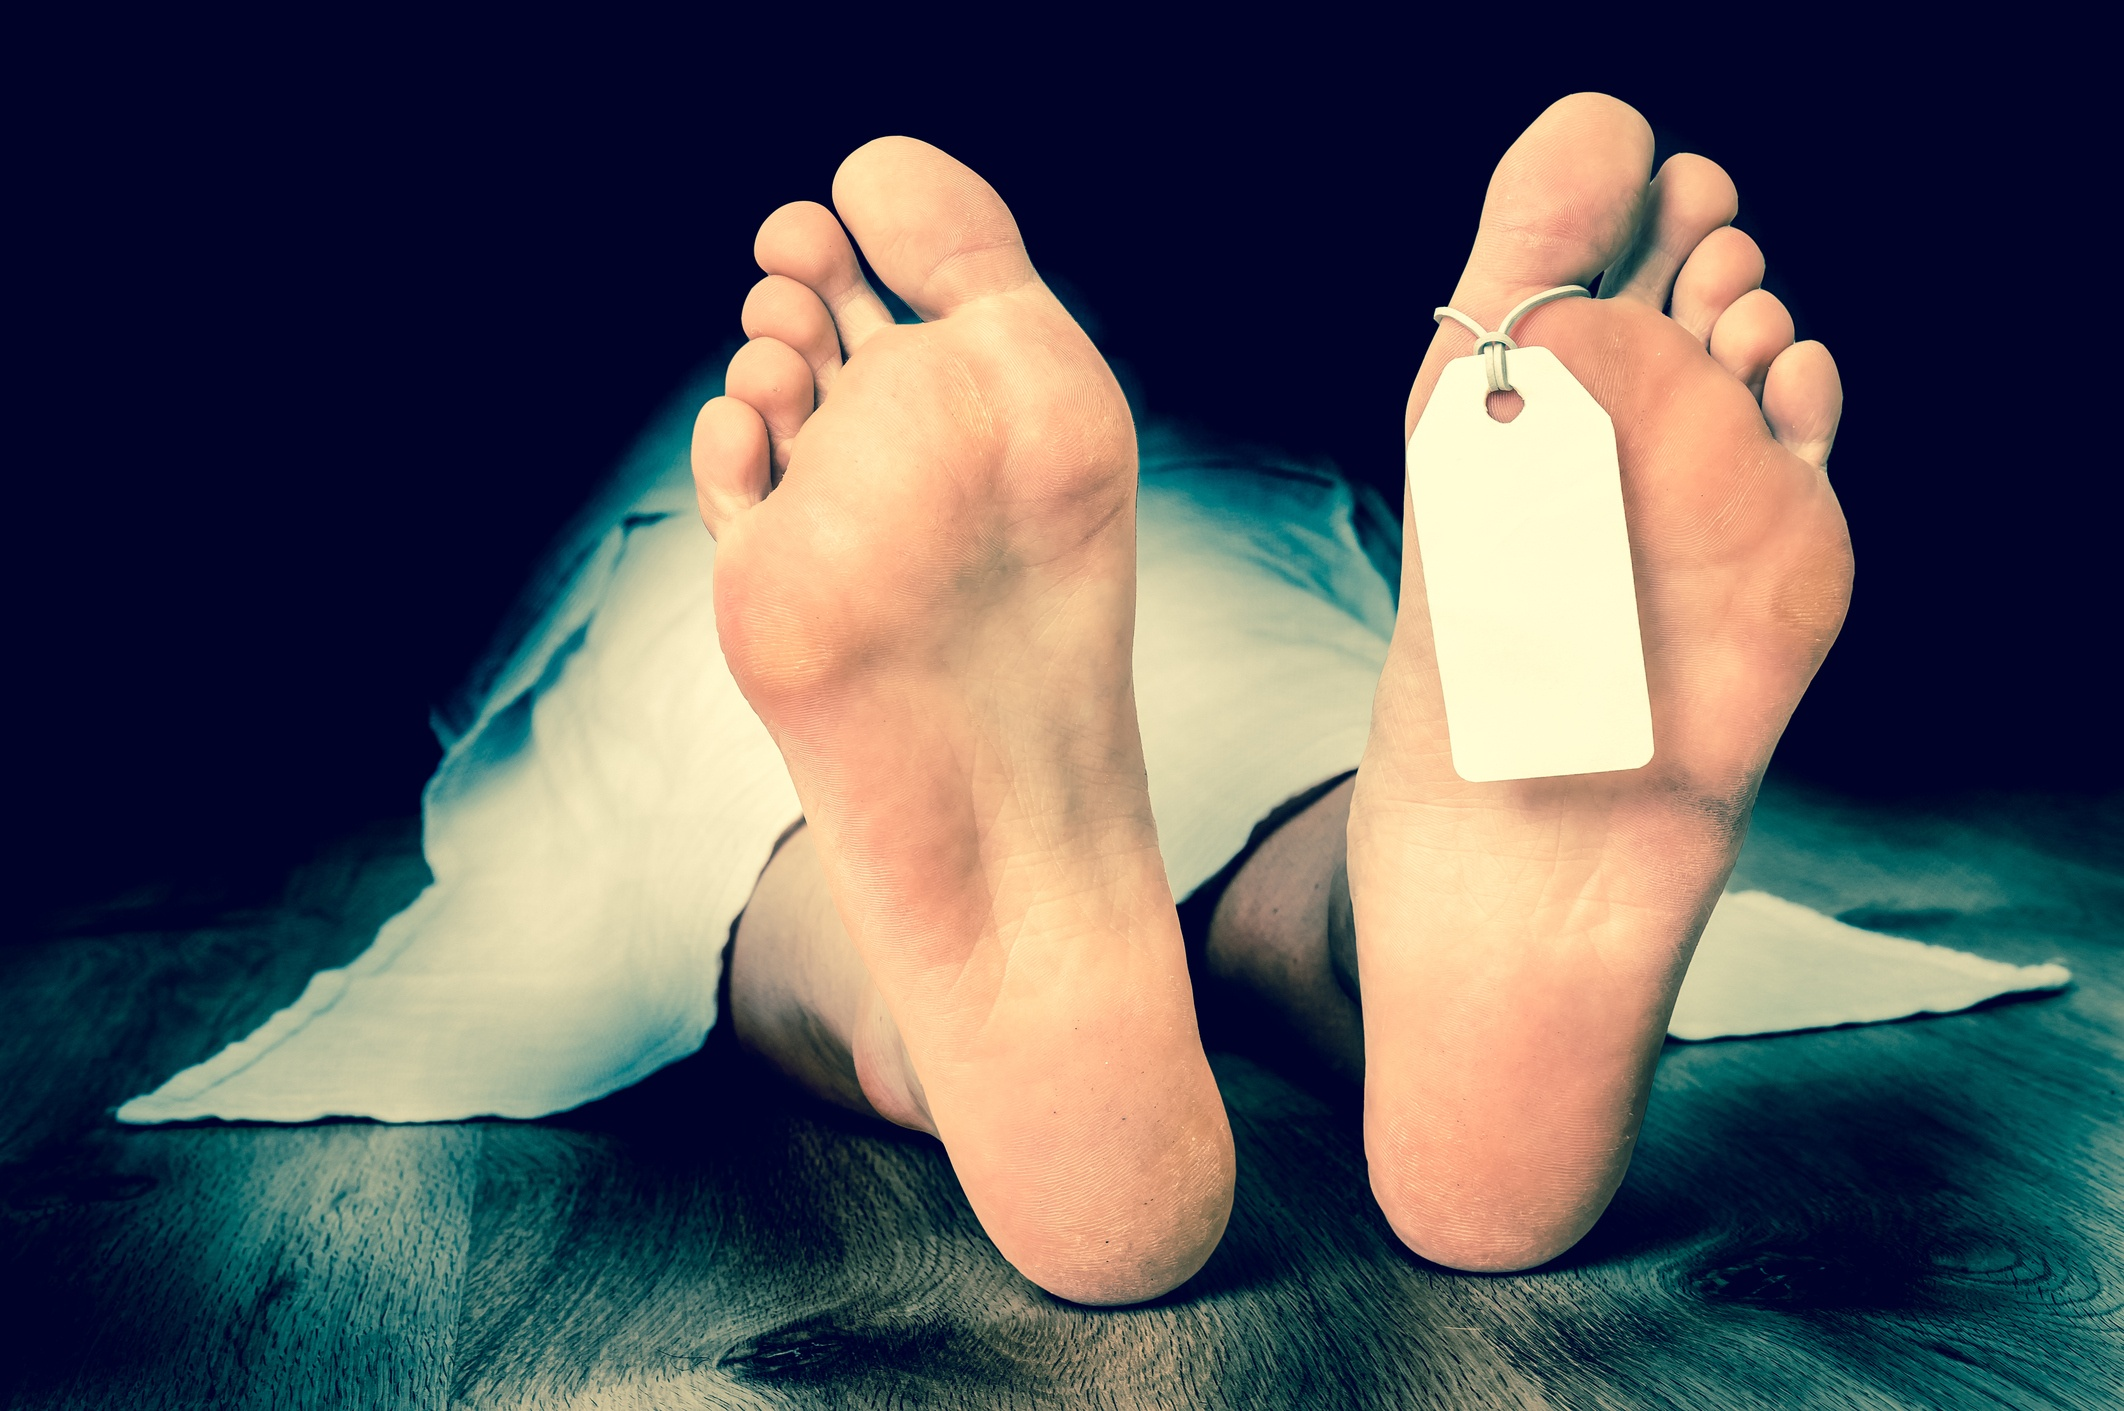 Dead woman with blank tag on feet